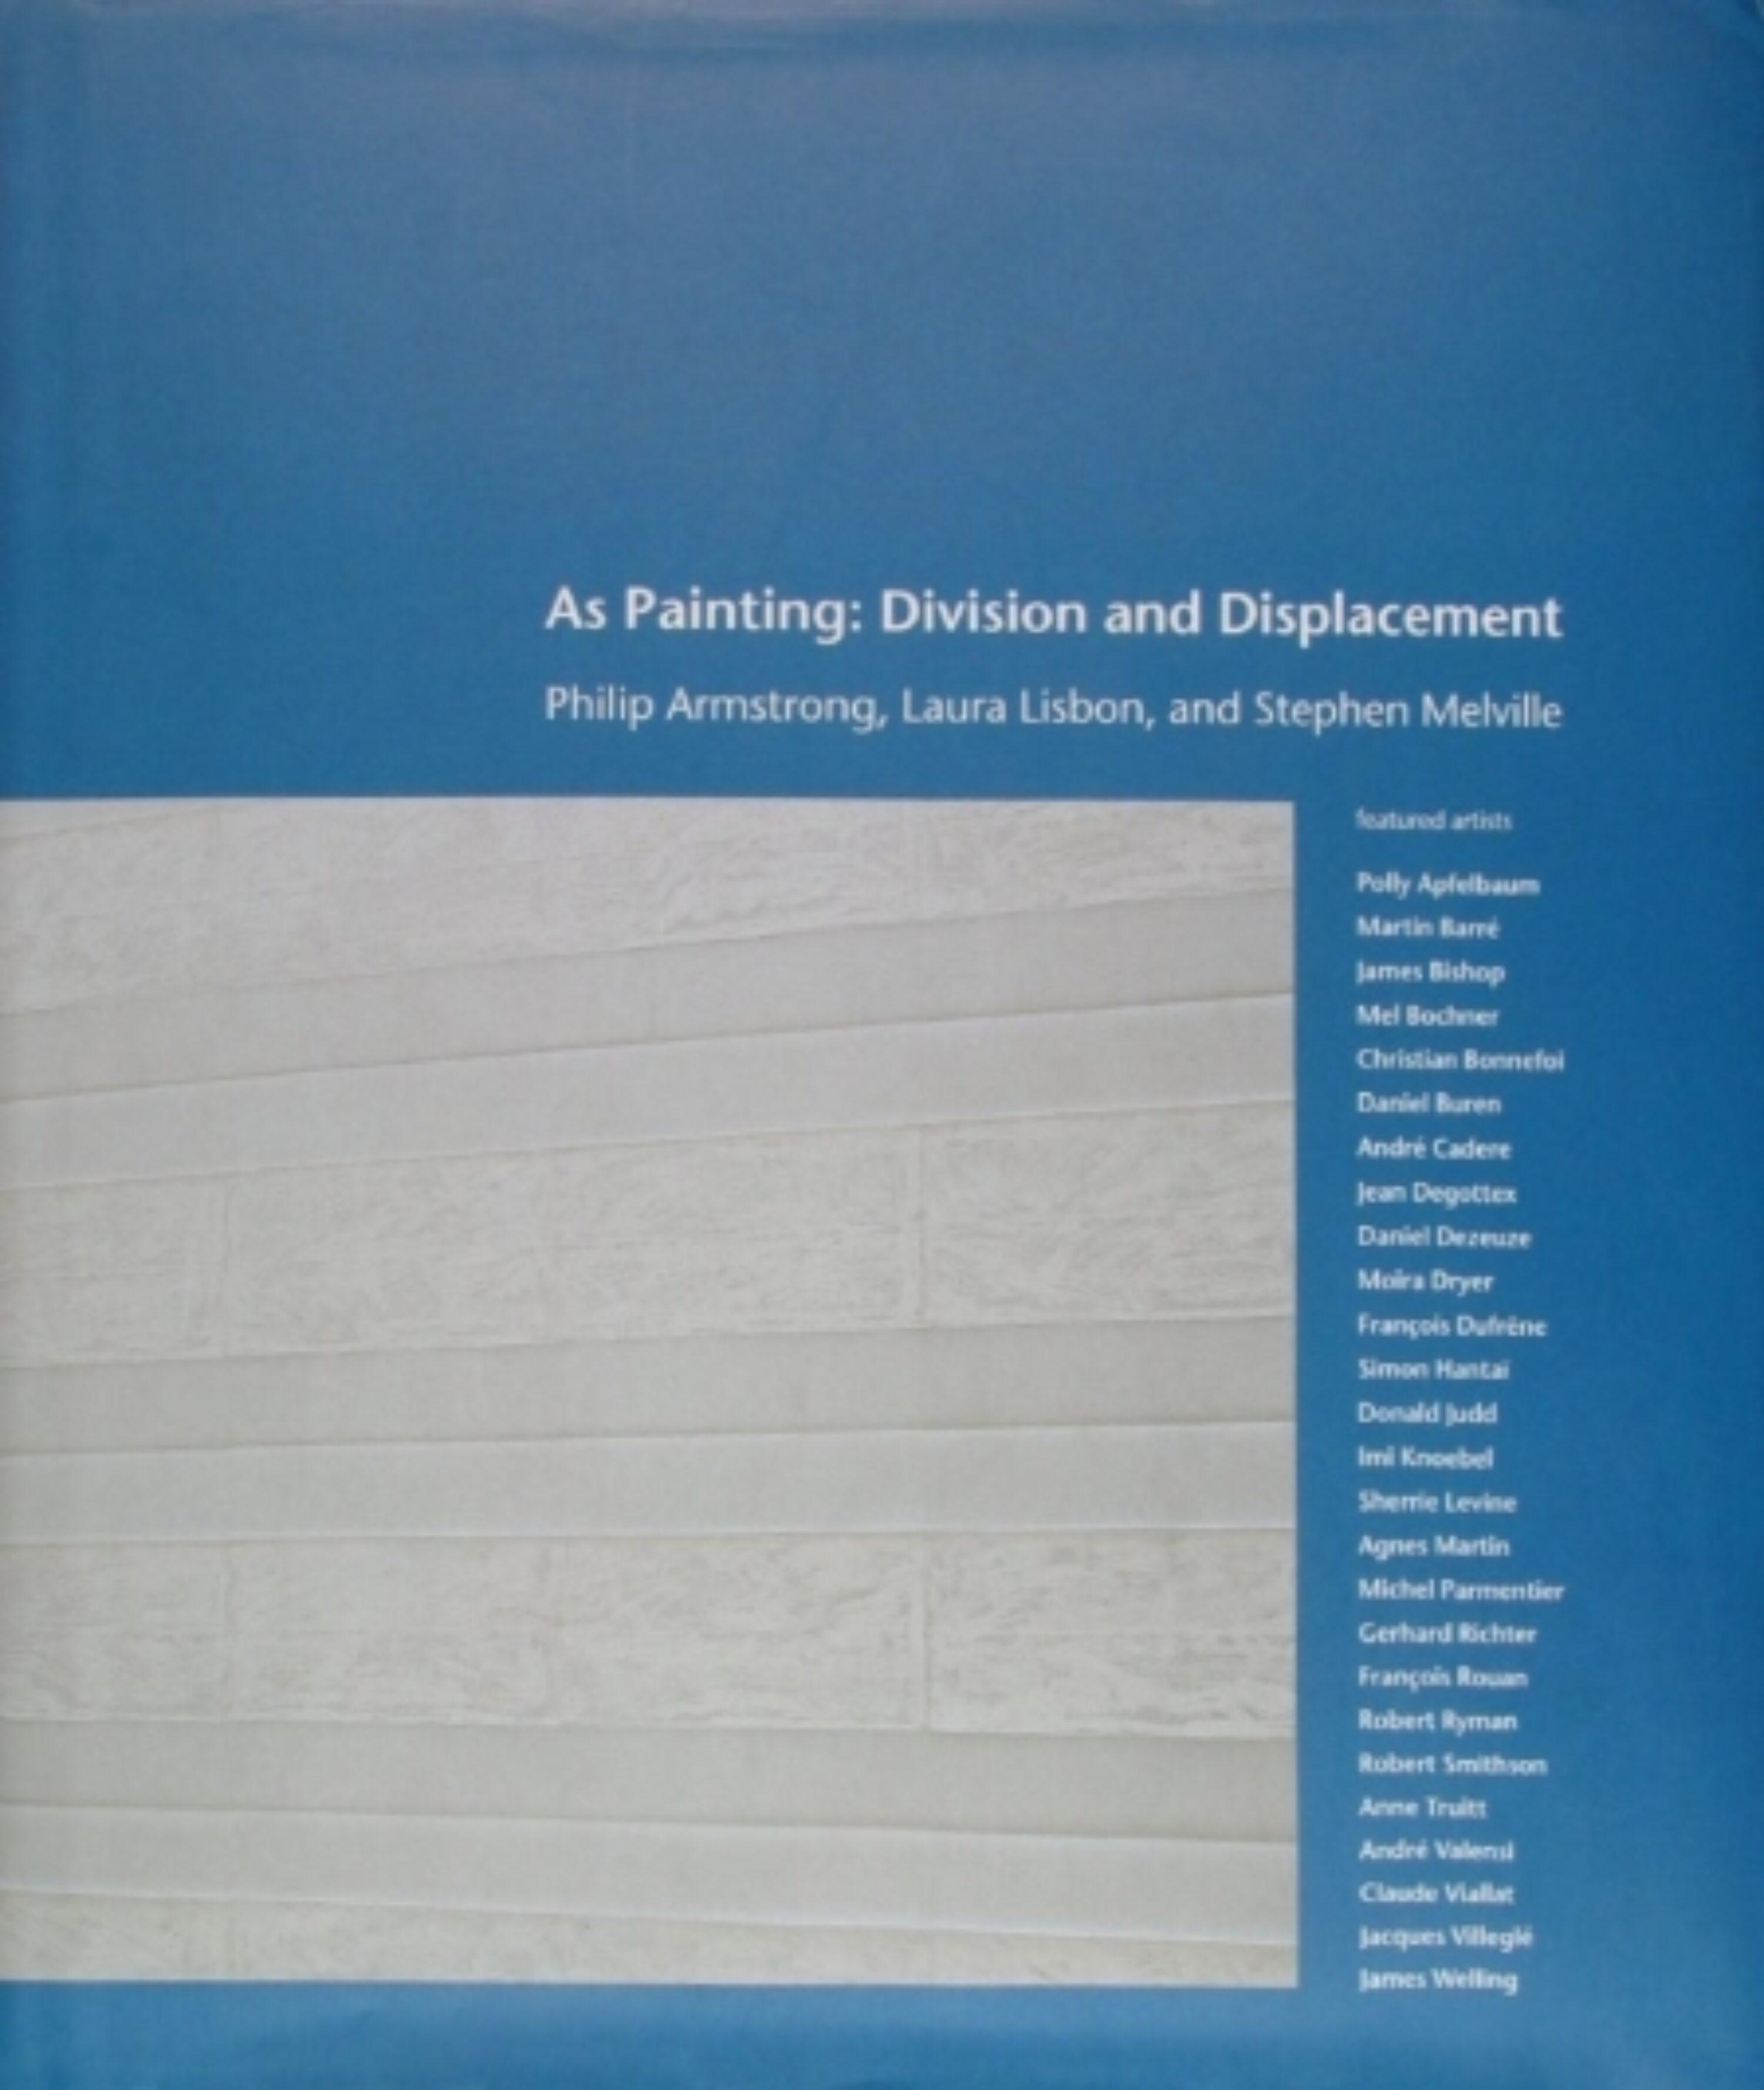 Image of the front cover of As Painting: Division and Displacement